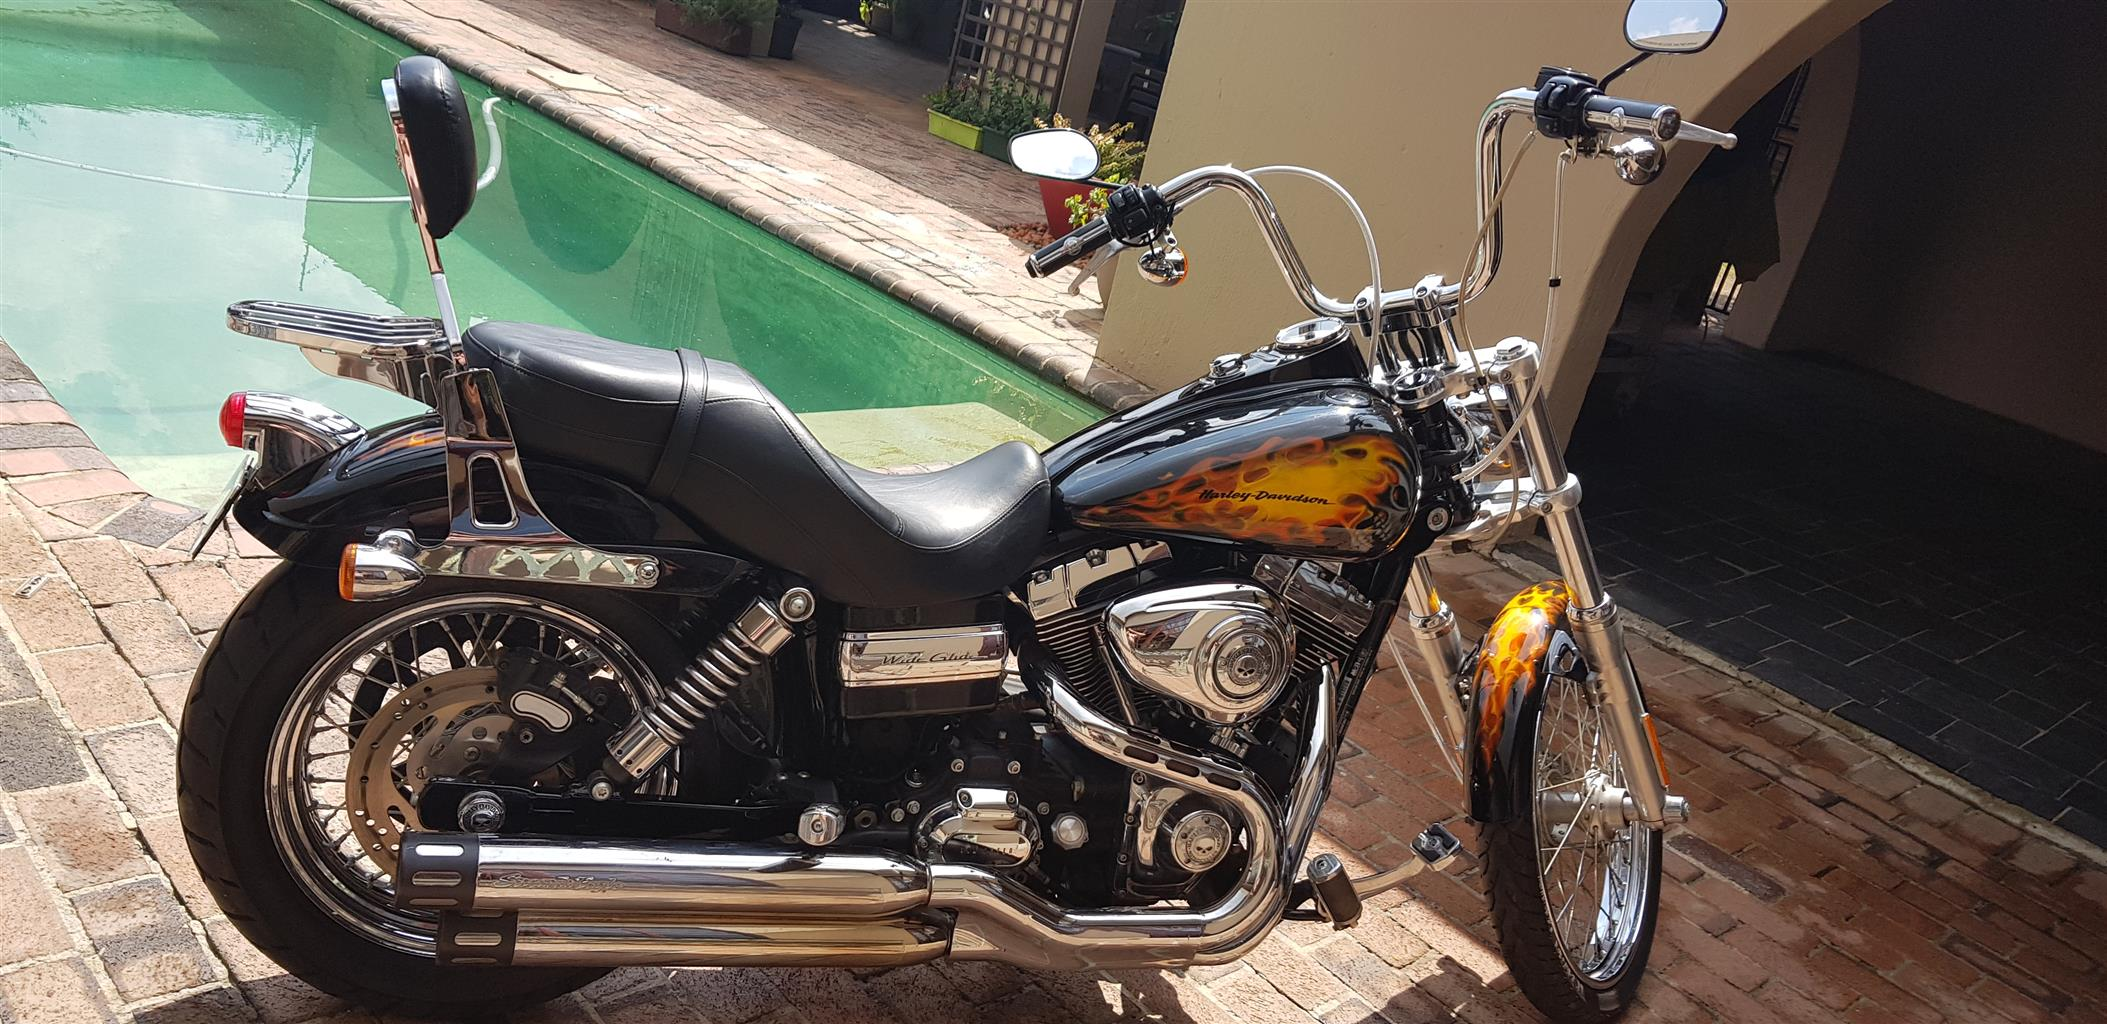 2011 Harley Davidson Wide Glide. Immaculate condition.